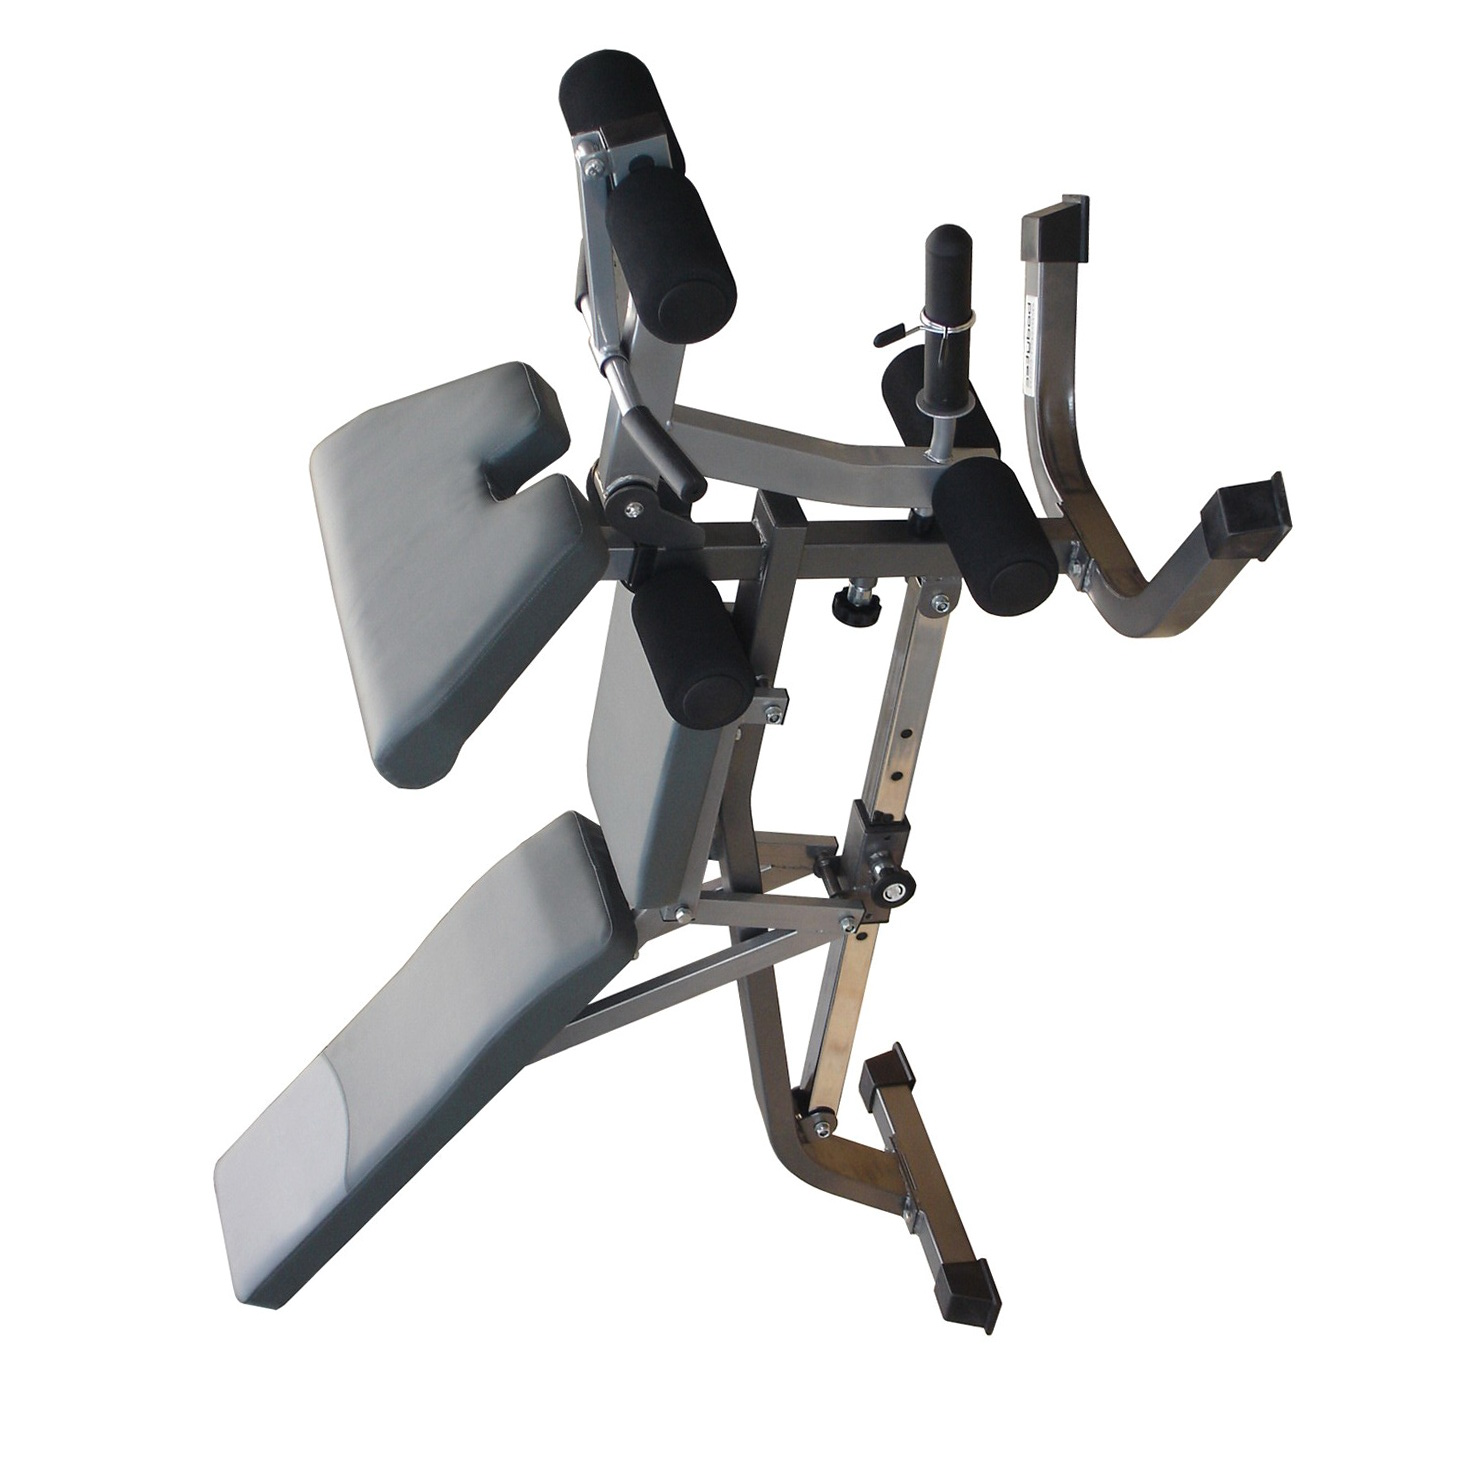 Weights And Bench Sets For Sale 28 Images Weight Bench Sets For Sale Home Design Ideas